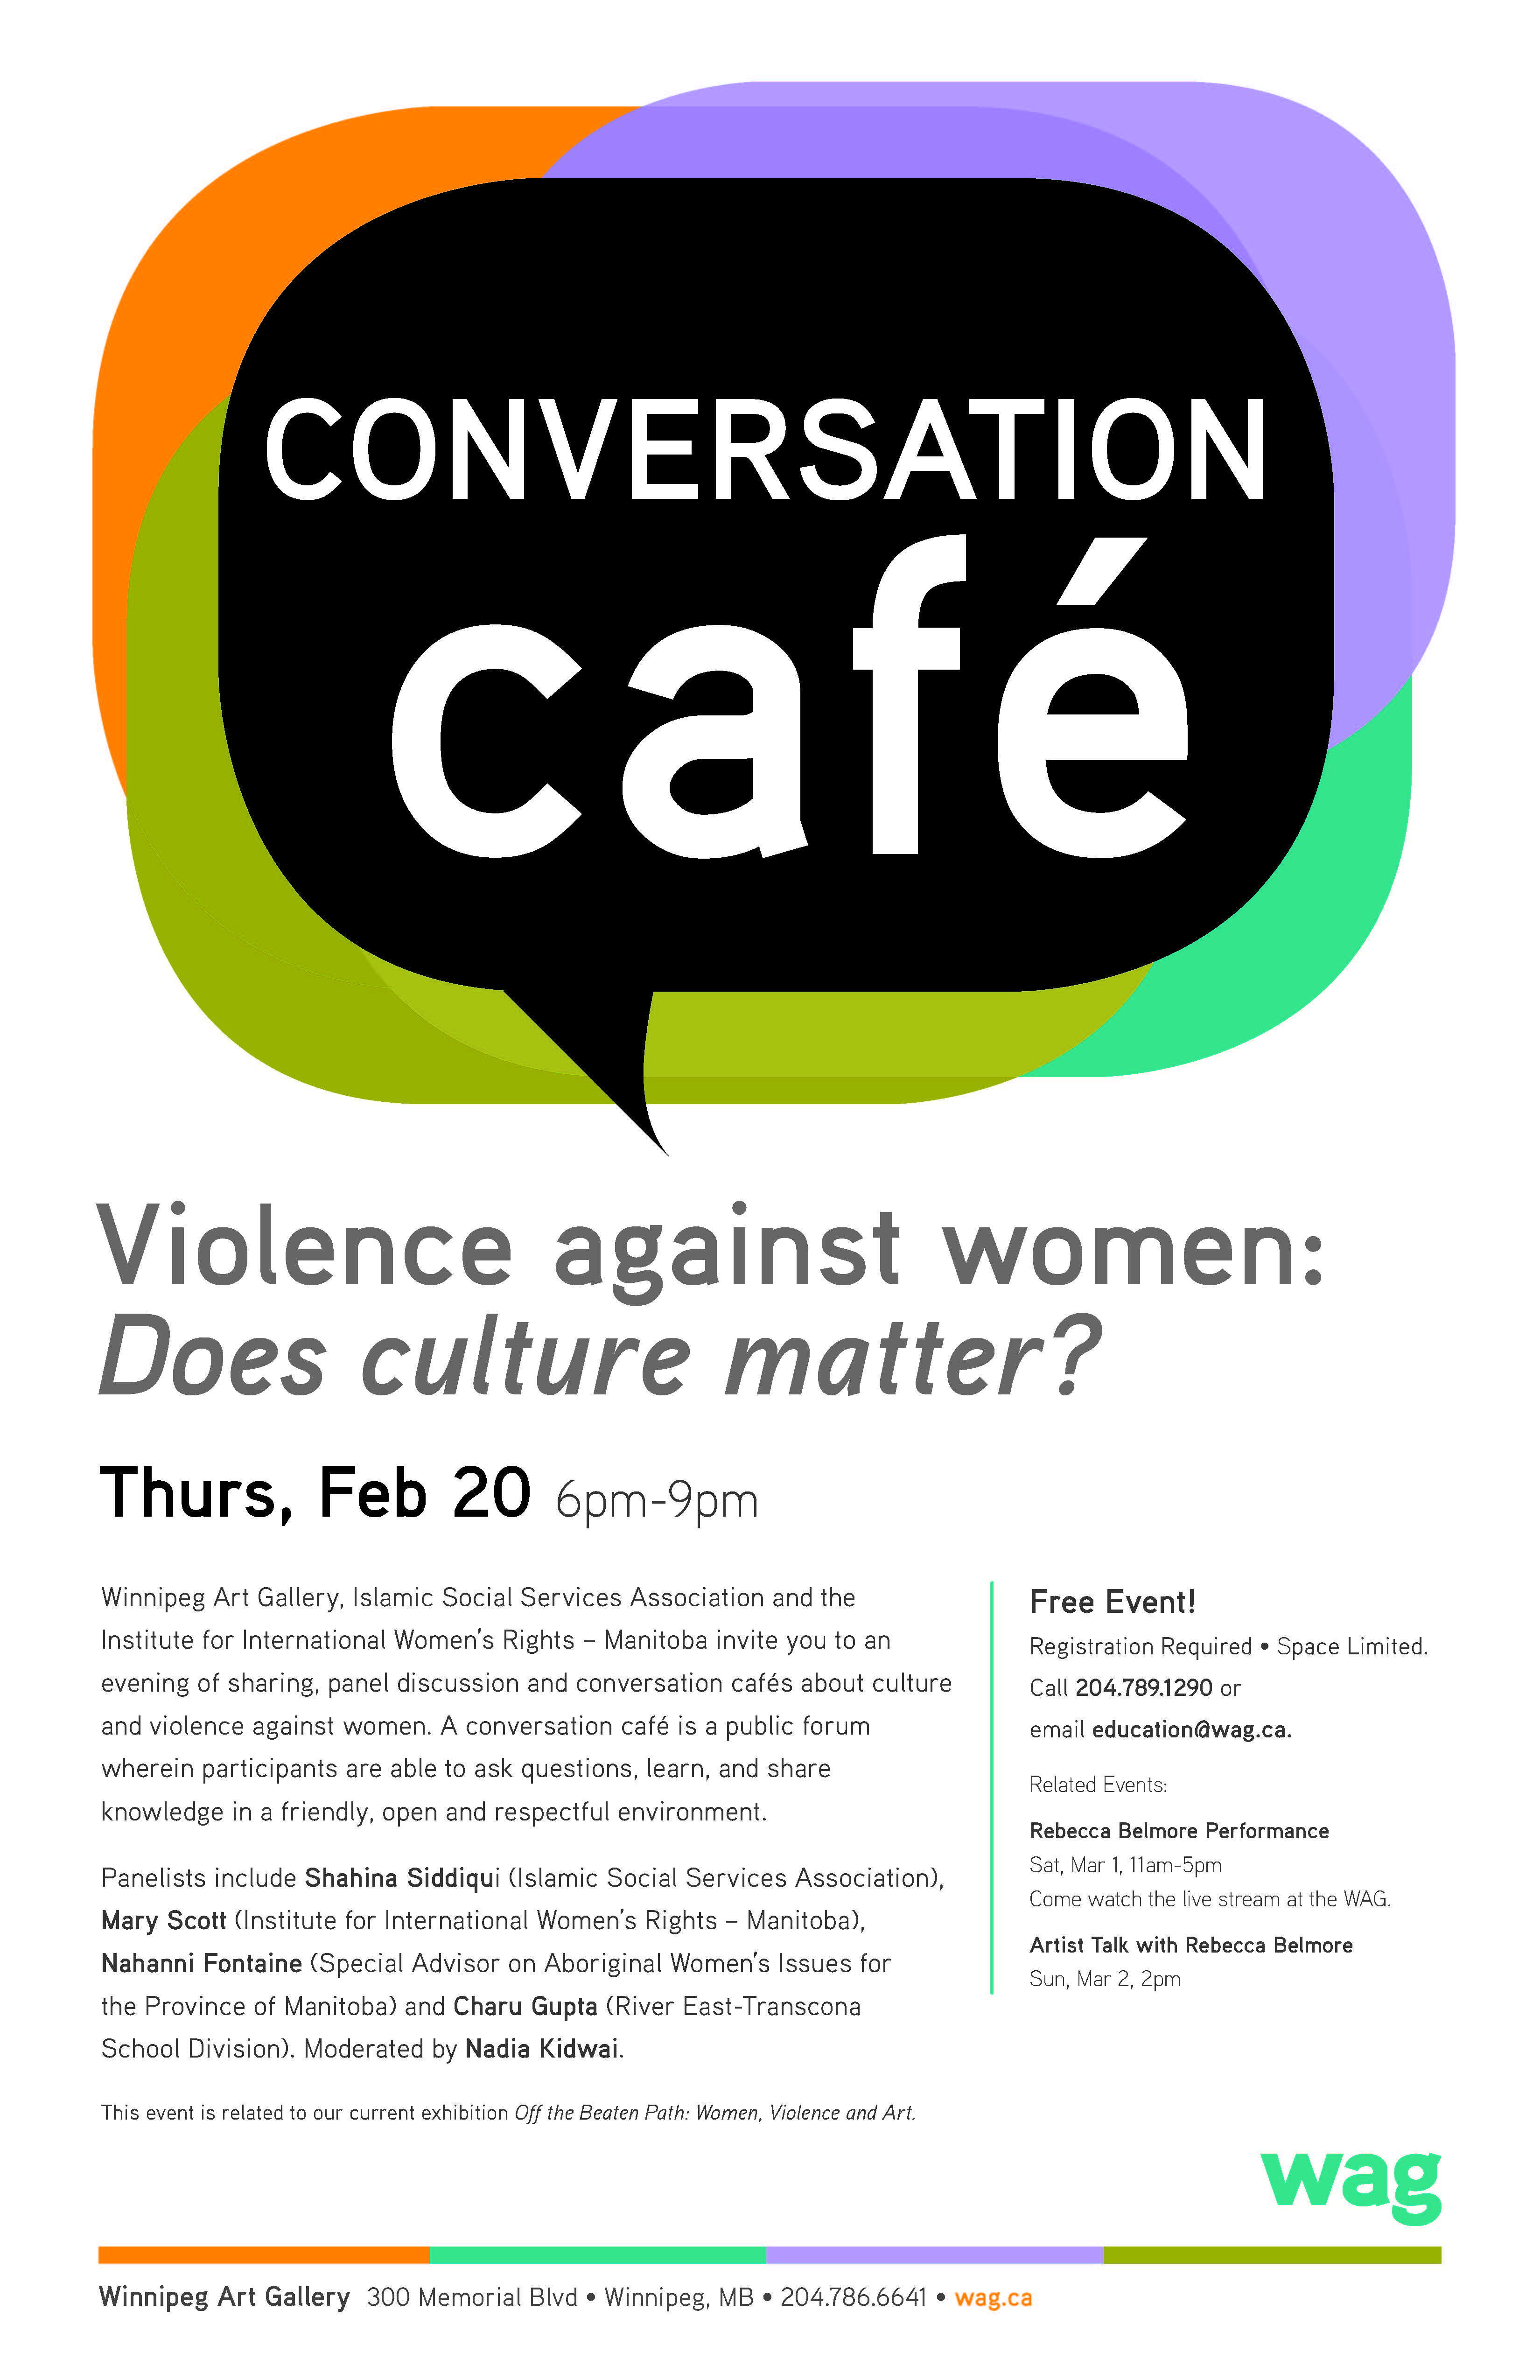 2014 Conversation Cafe Poster IIWRMB participating event